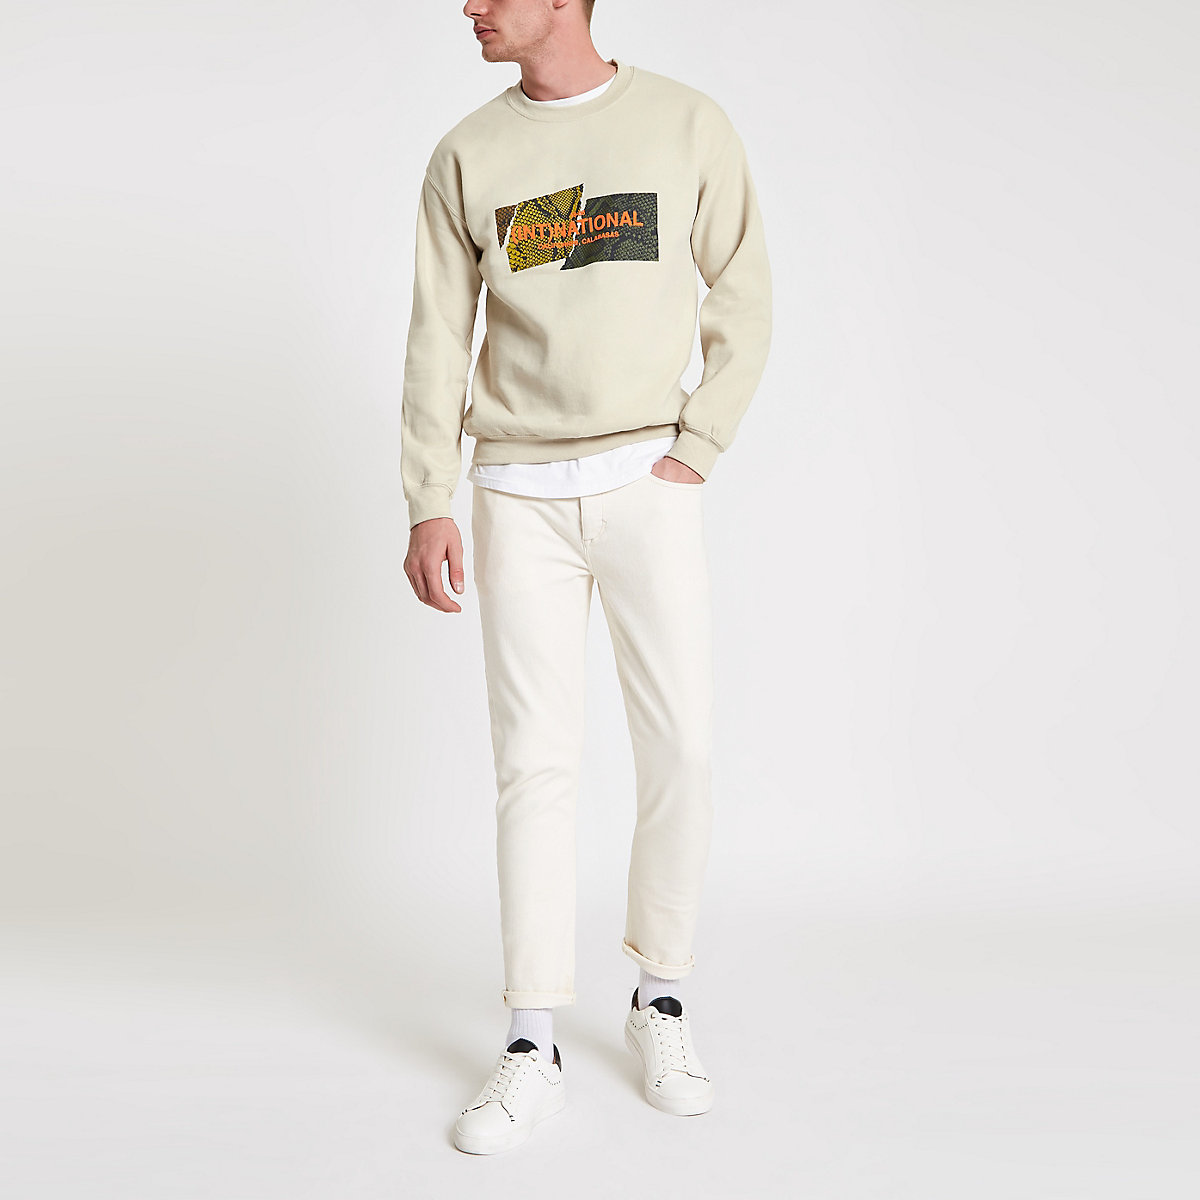 Stone 'international' crew neck sweatshirt